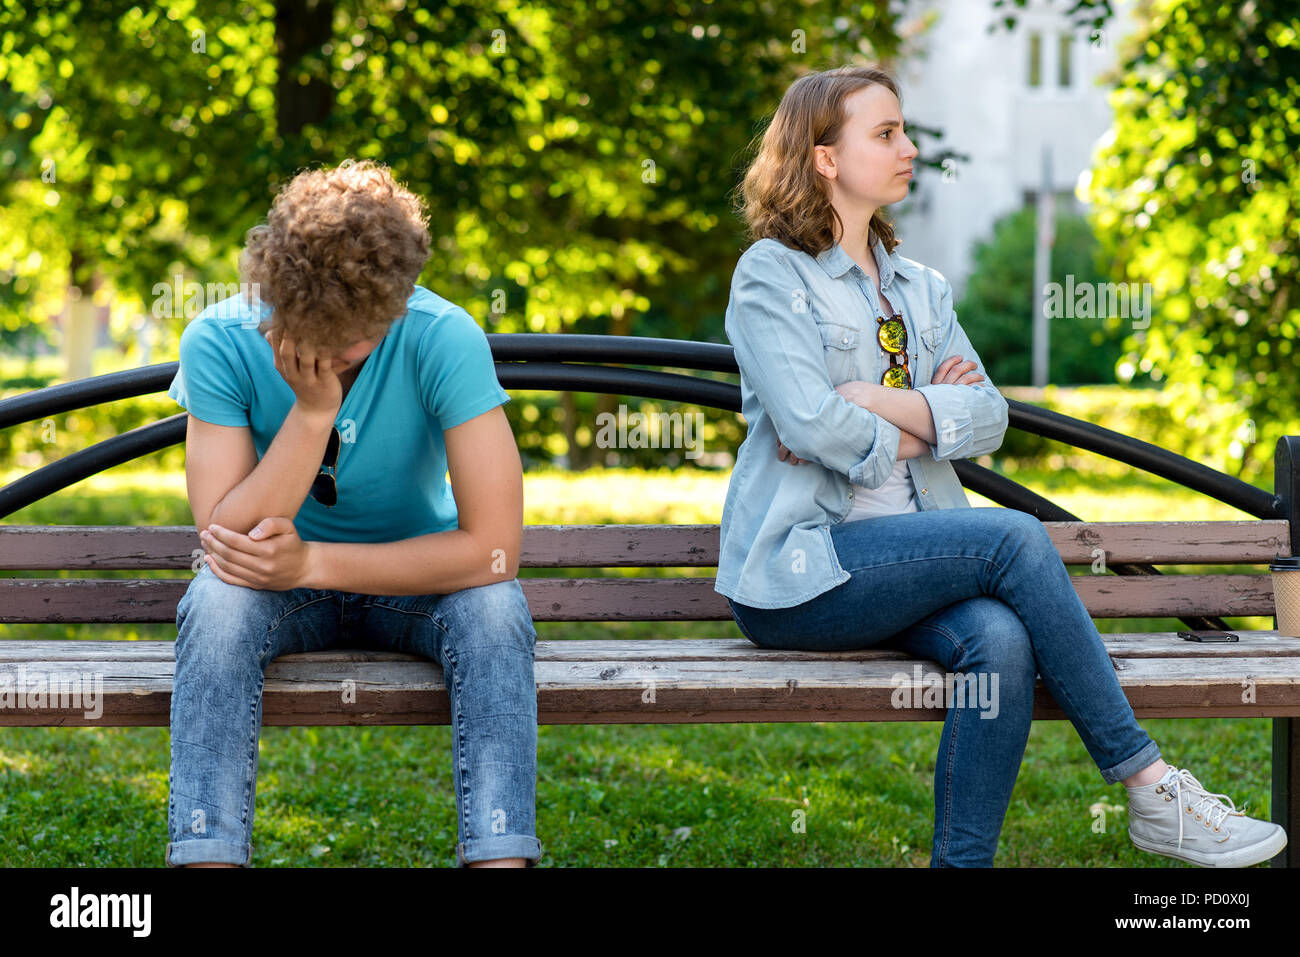 A boy and a girl sitting bench. In summer in park in nature. The concept resentment of misunderstanding. Quarrel in a relationship in street. Parting in a relationship. Unwillingness to listen. - Stock Image